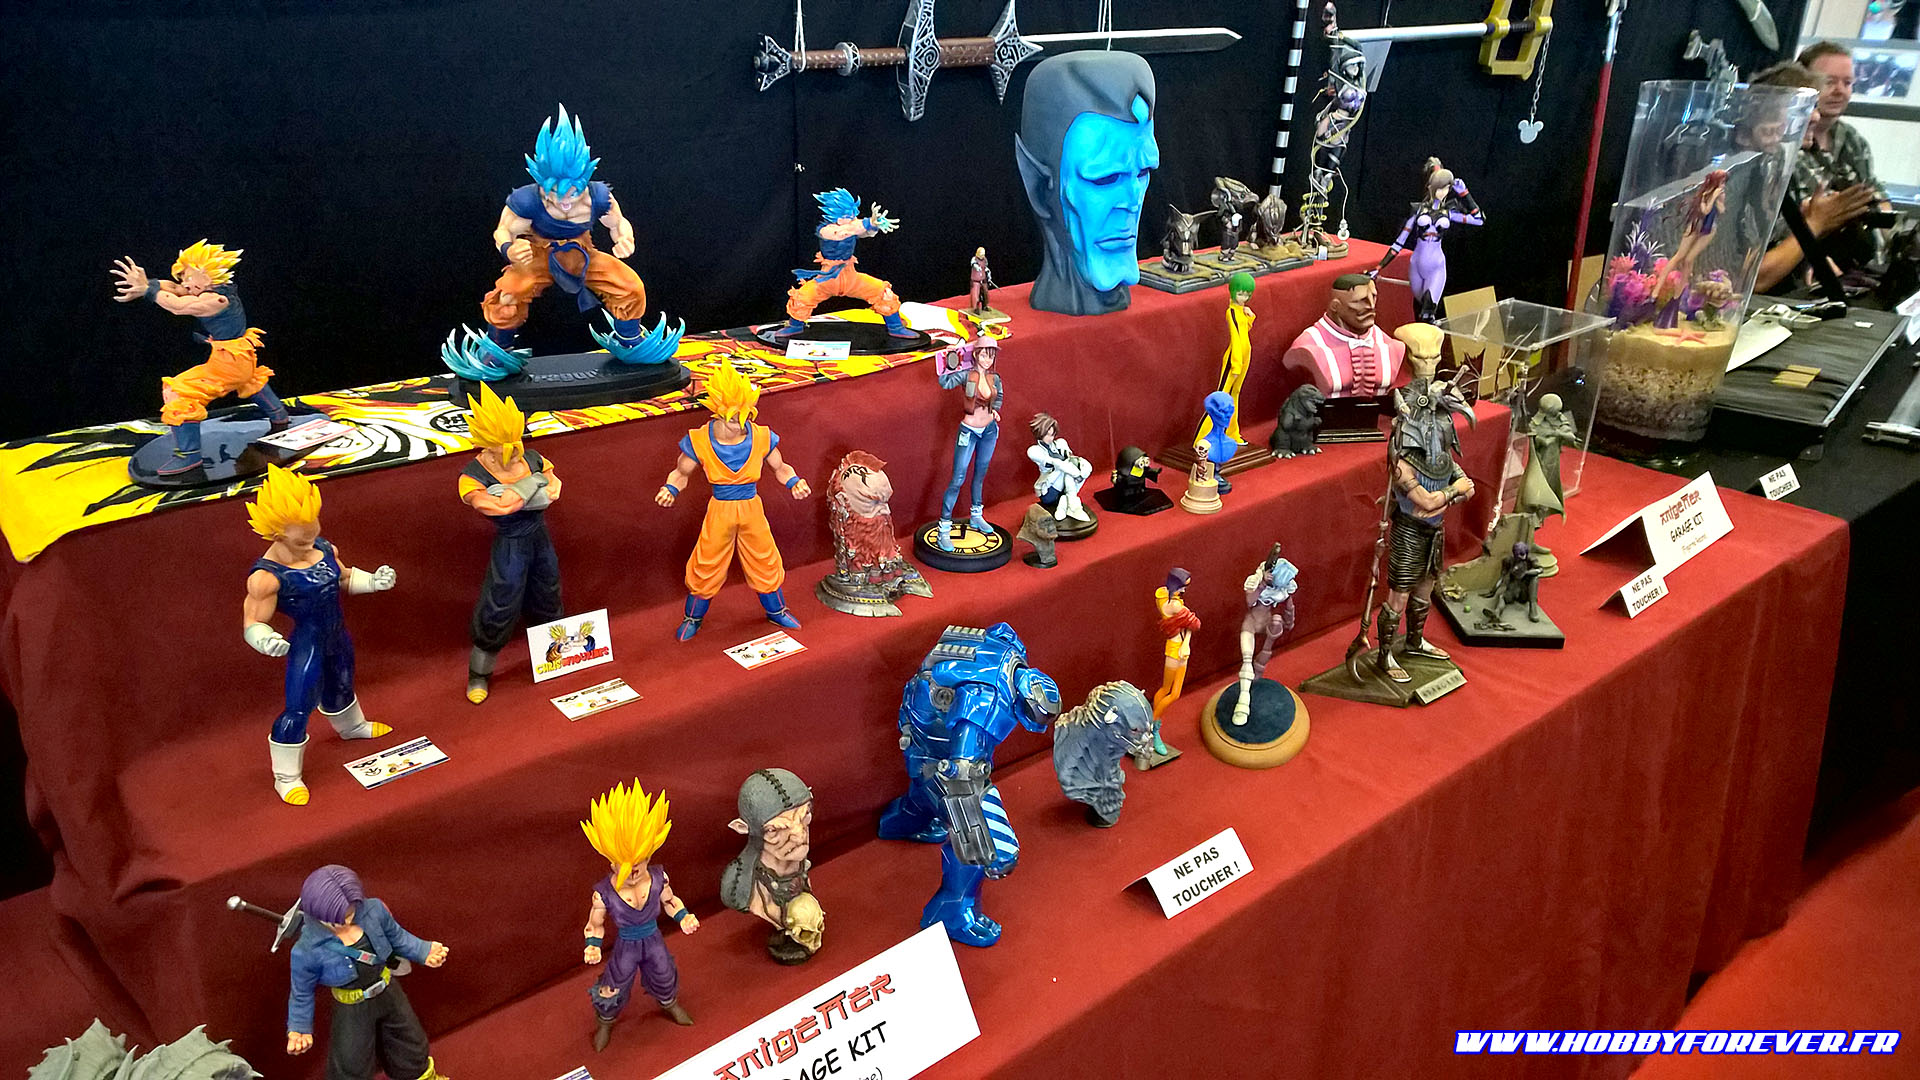 Les figurines DBZ recolorées de Chris Figurine et les garage kits de Passion Garage Kits